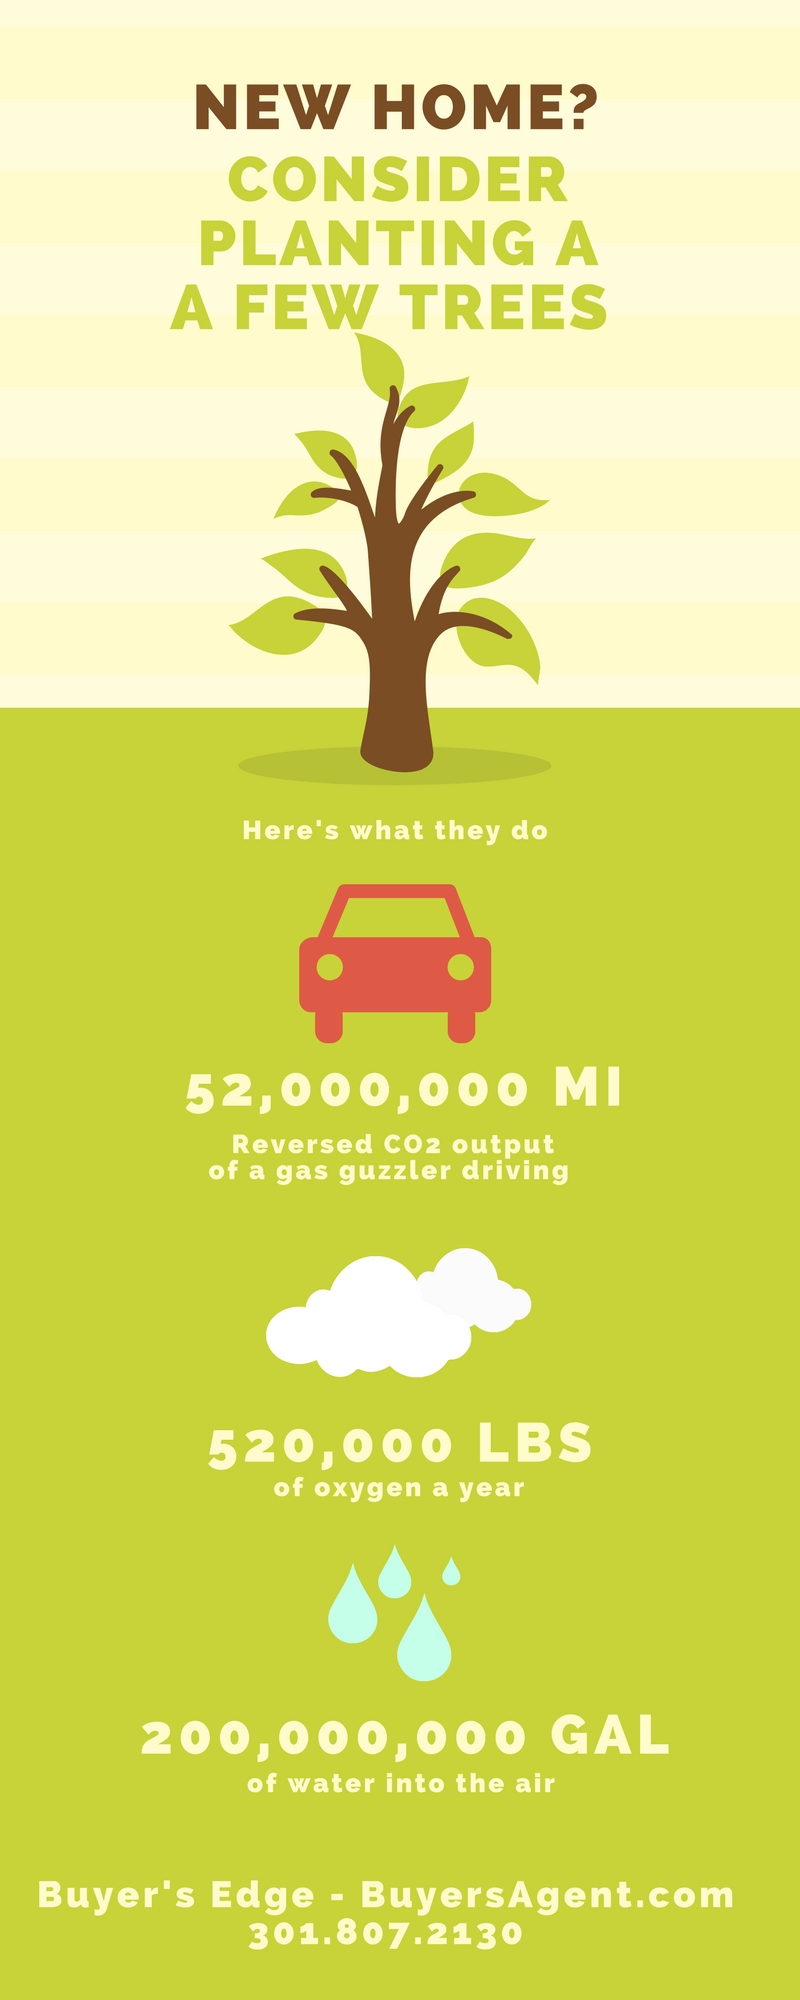 INFOGRAPHIC CANVA Plant a tree BuyersAgent.com.jpg